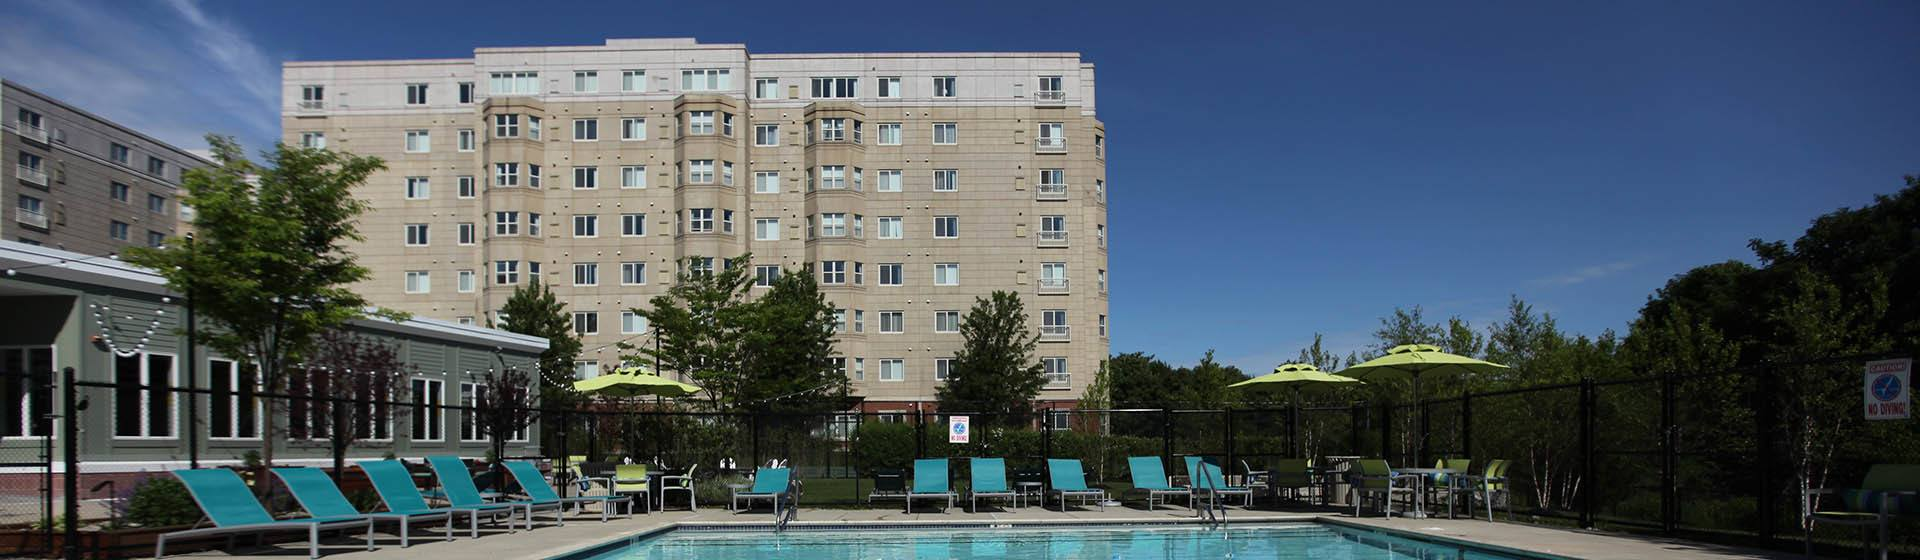 Quincy Massachusetts apartments for rent